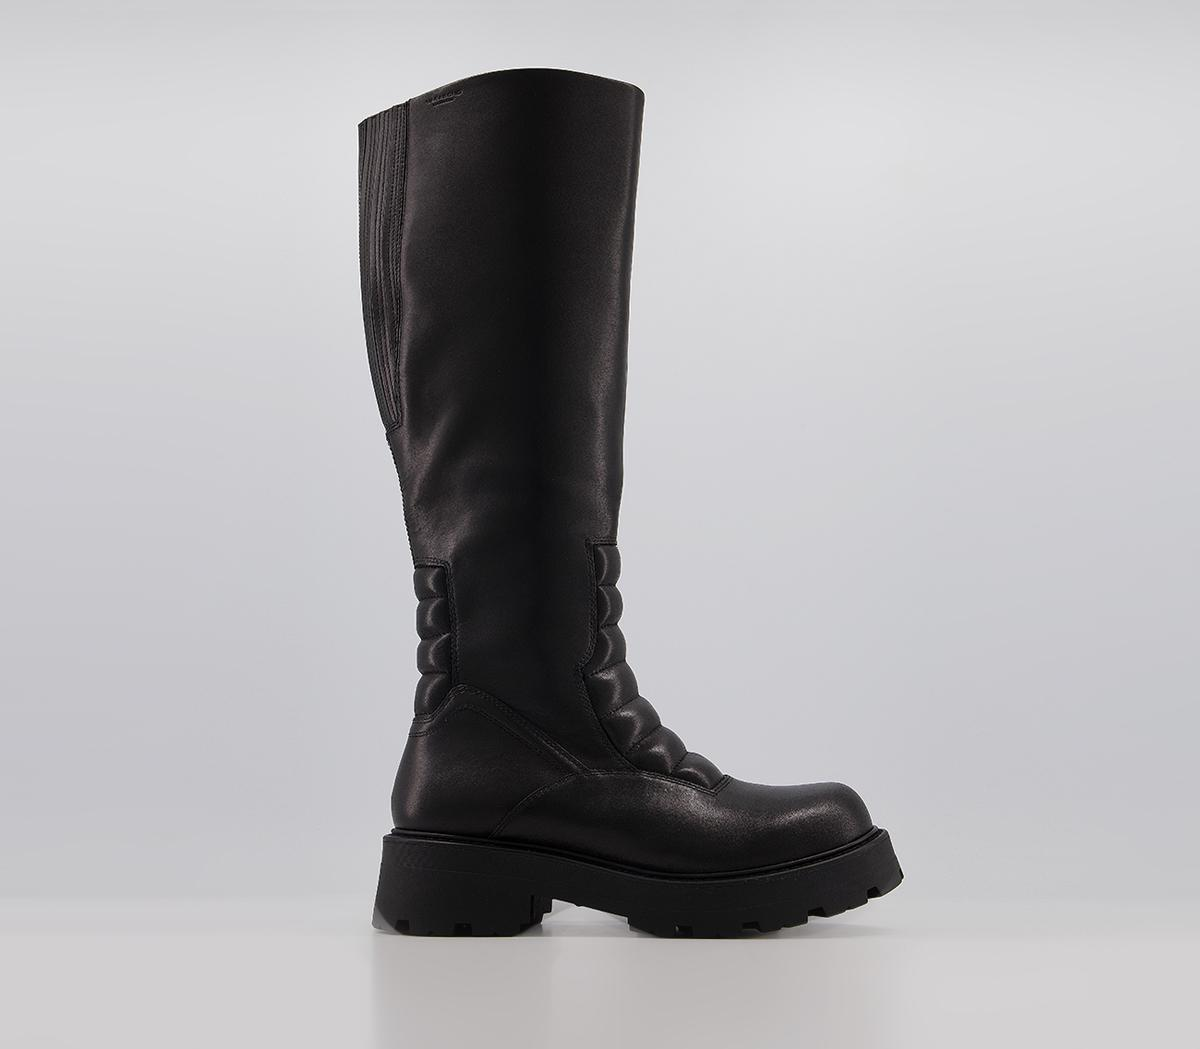 Cosmo 2.0 Tall Biker Boots